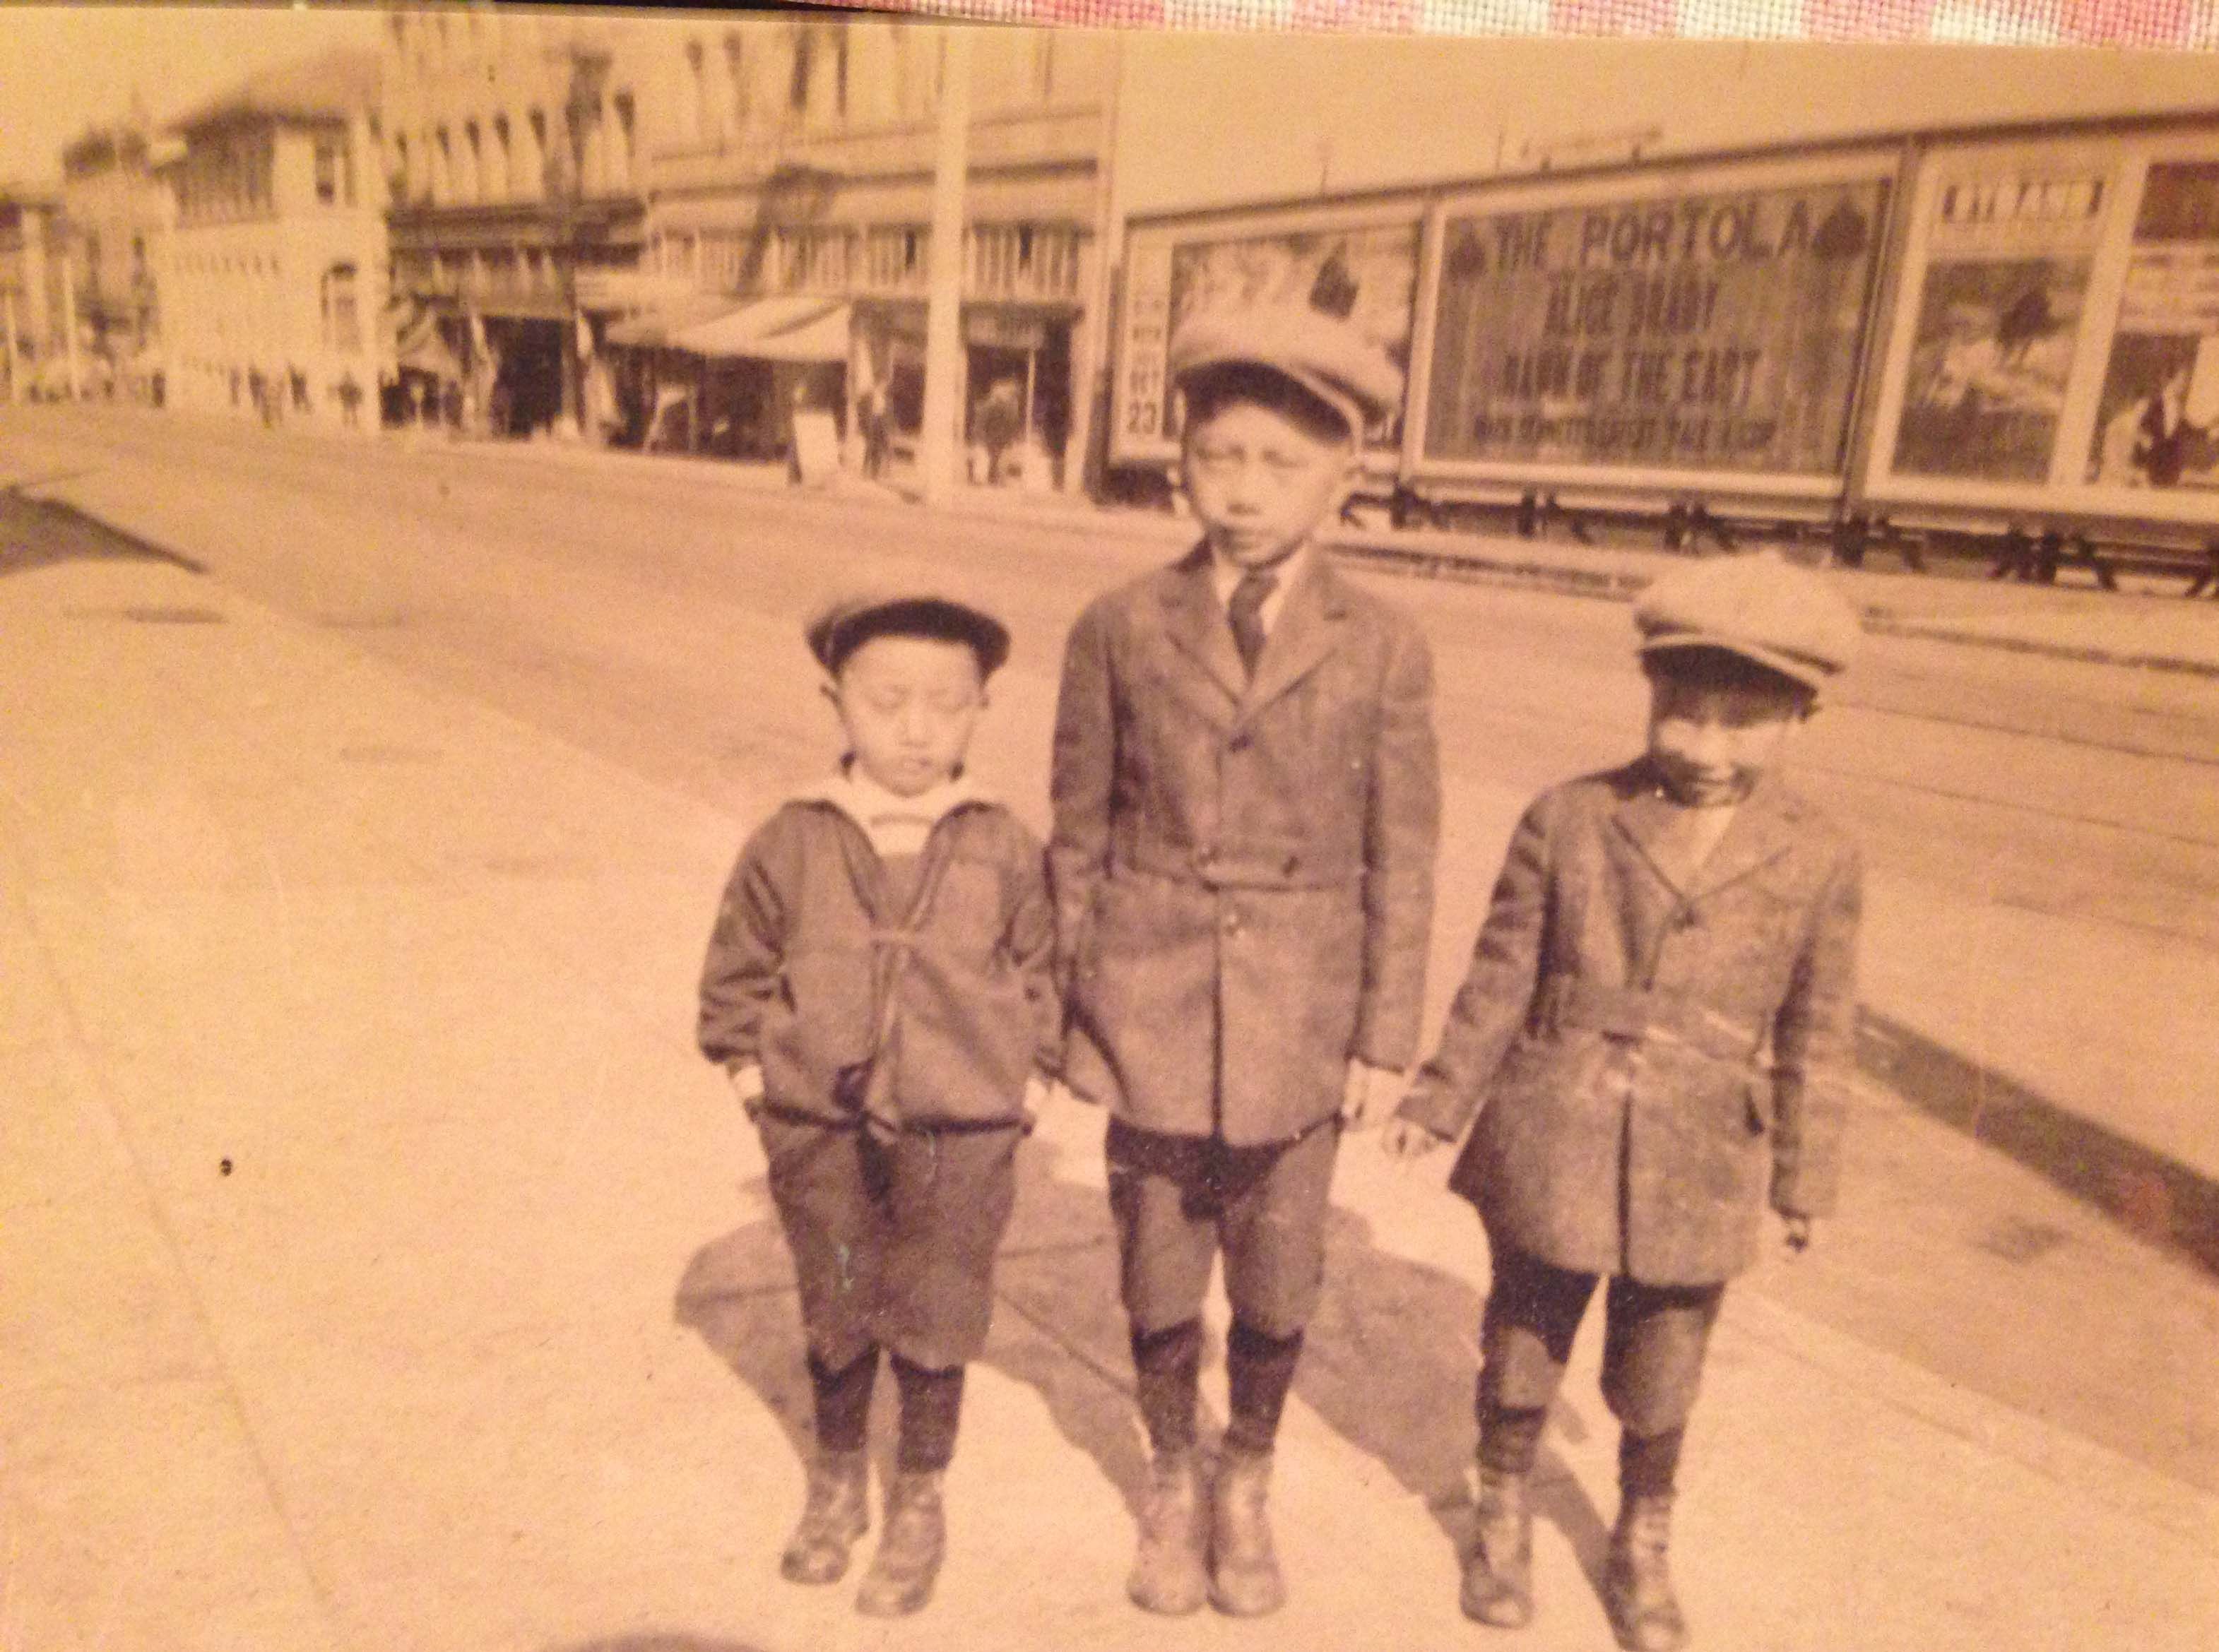 My uncles, Francis and Stanley Jong, with their cousin, Eddy on a San Francisco street in 1920. Source: Roberta Yee collection